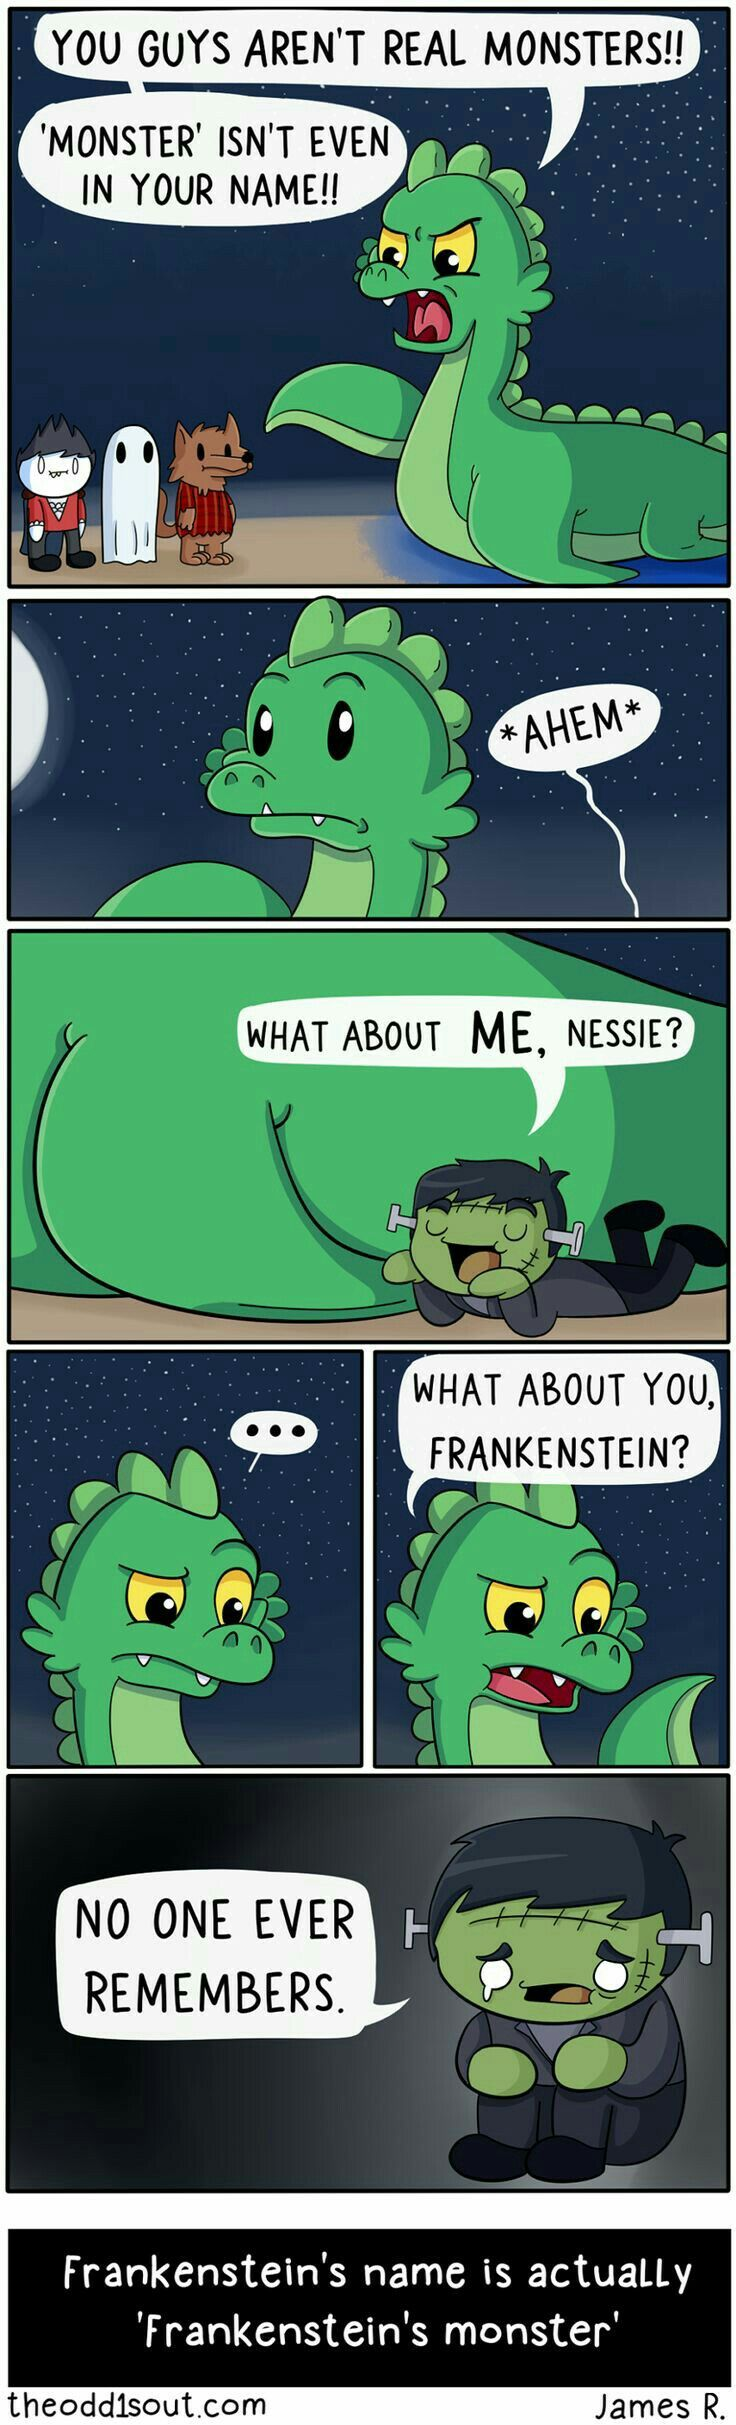 Frankenstein is the Dr. who created the monster!! The actual monster doesn't have a name and is just referred to as Frankenstein's monster! Common mistake that drives literary nerds crazy!